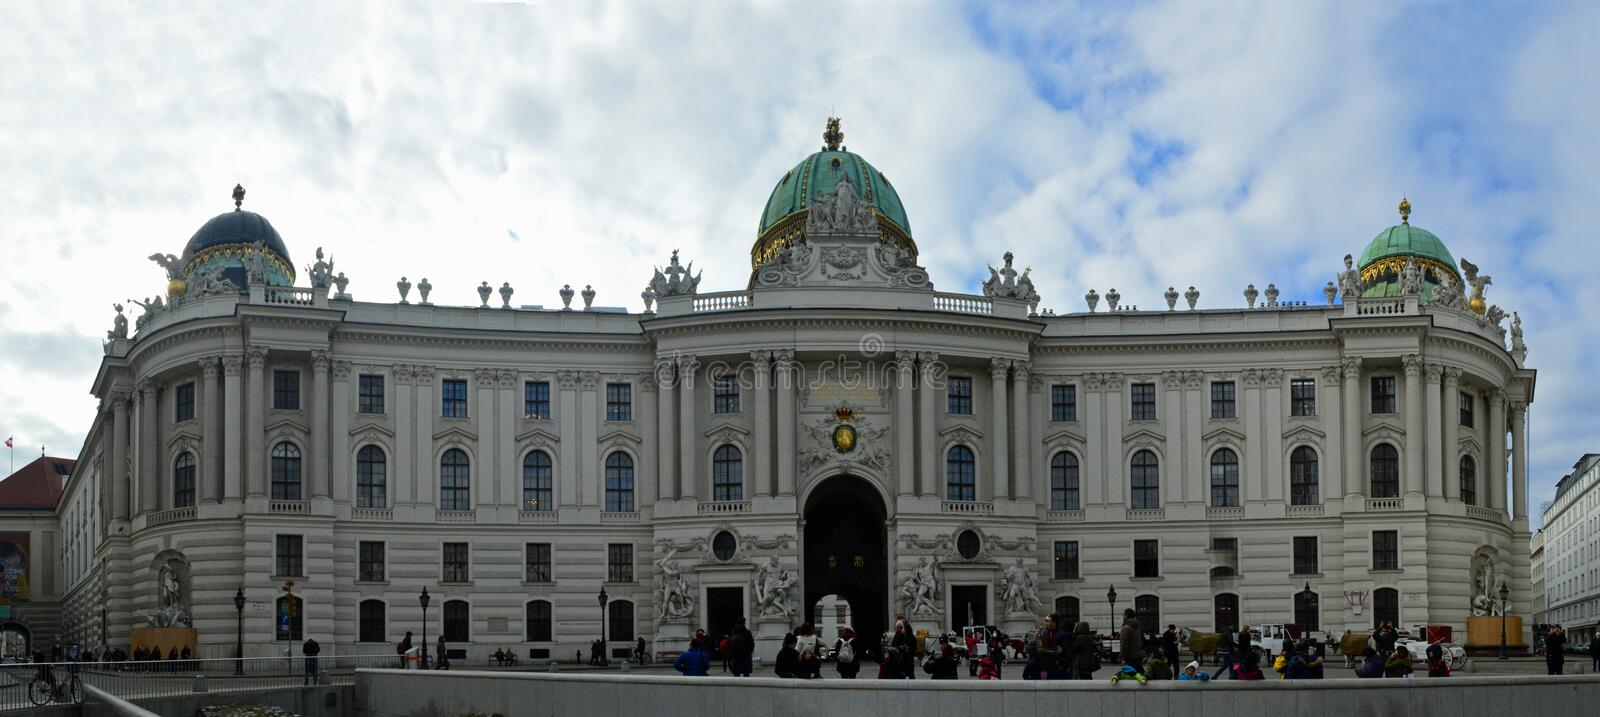 Panoramic view of Hofburg Palace royalty free stock images